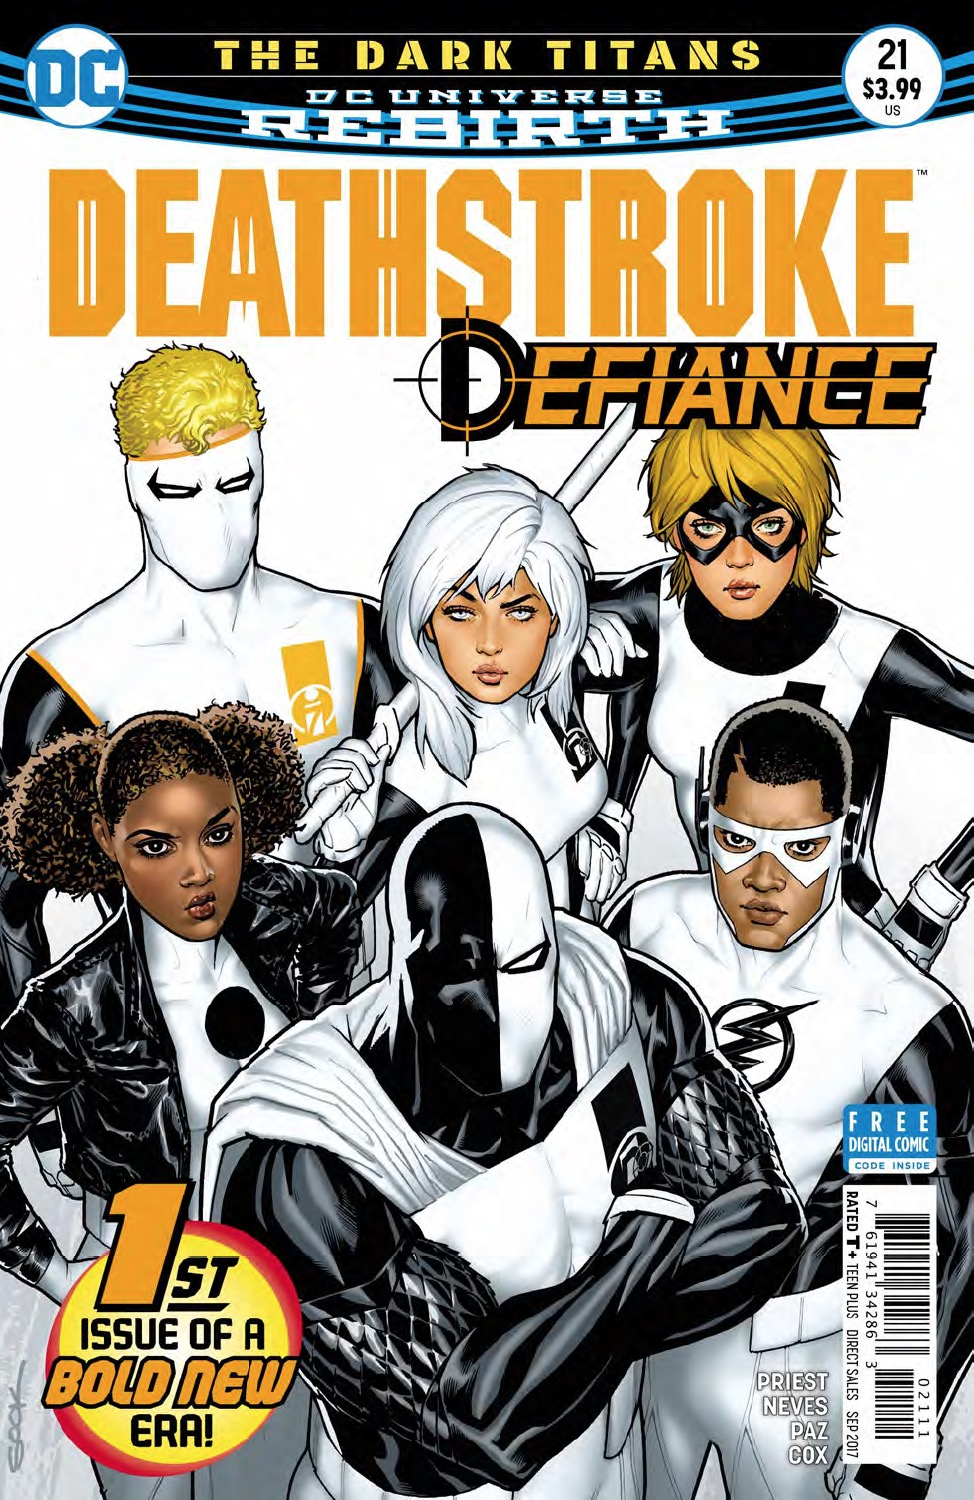 Deathstroke formulates a team called Defiance now that he's on the straight and narrow.